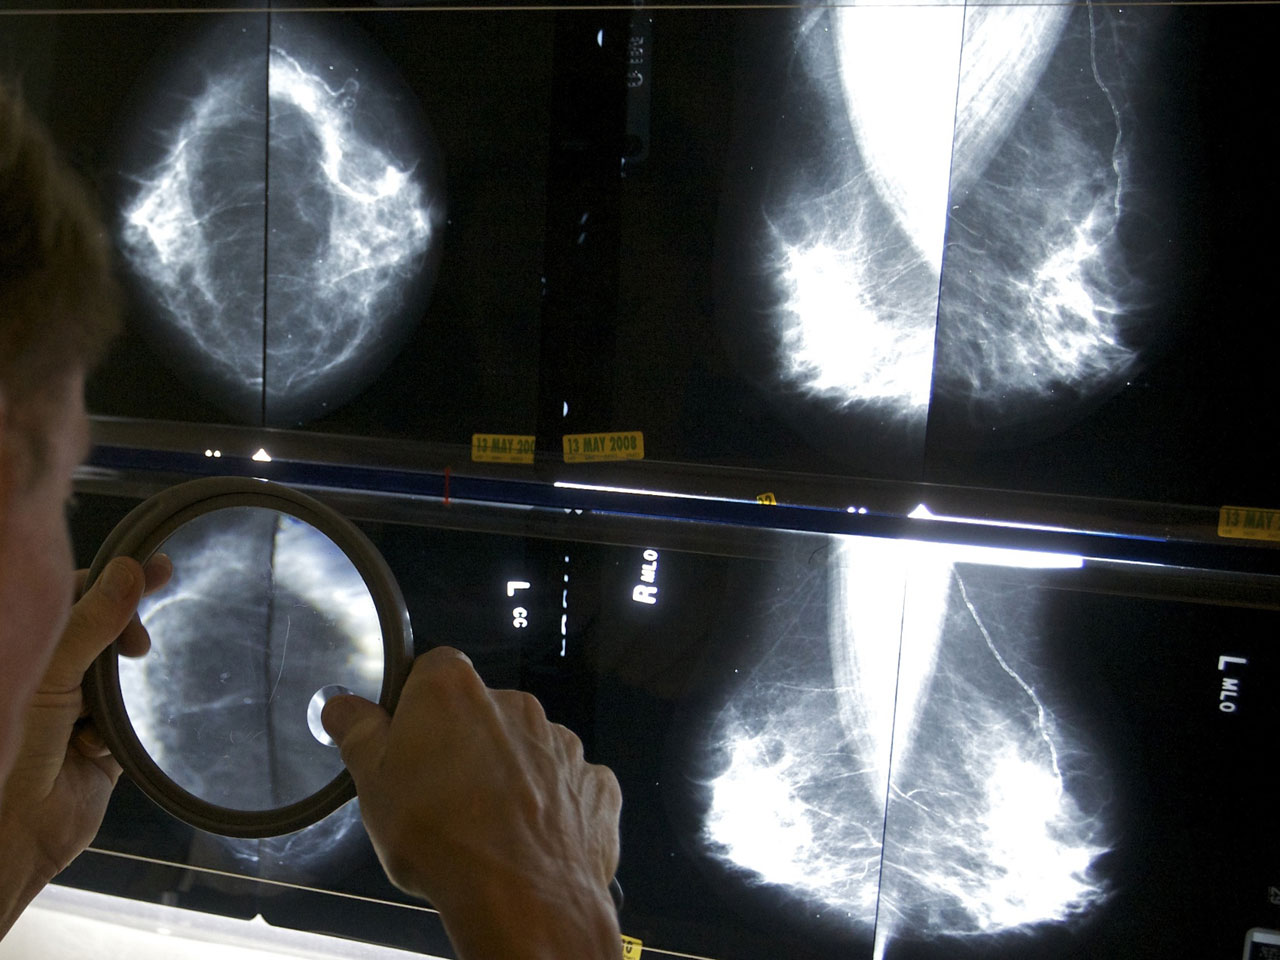 Mammograms For Women Ages 50 To 74 May Not Be Needed Every Year